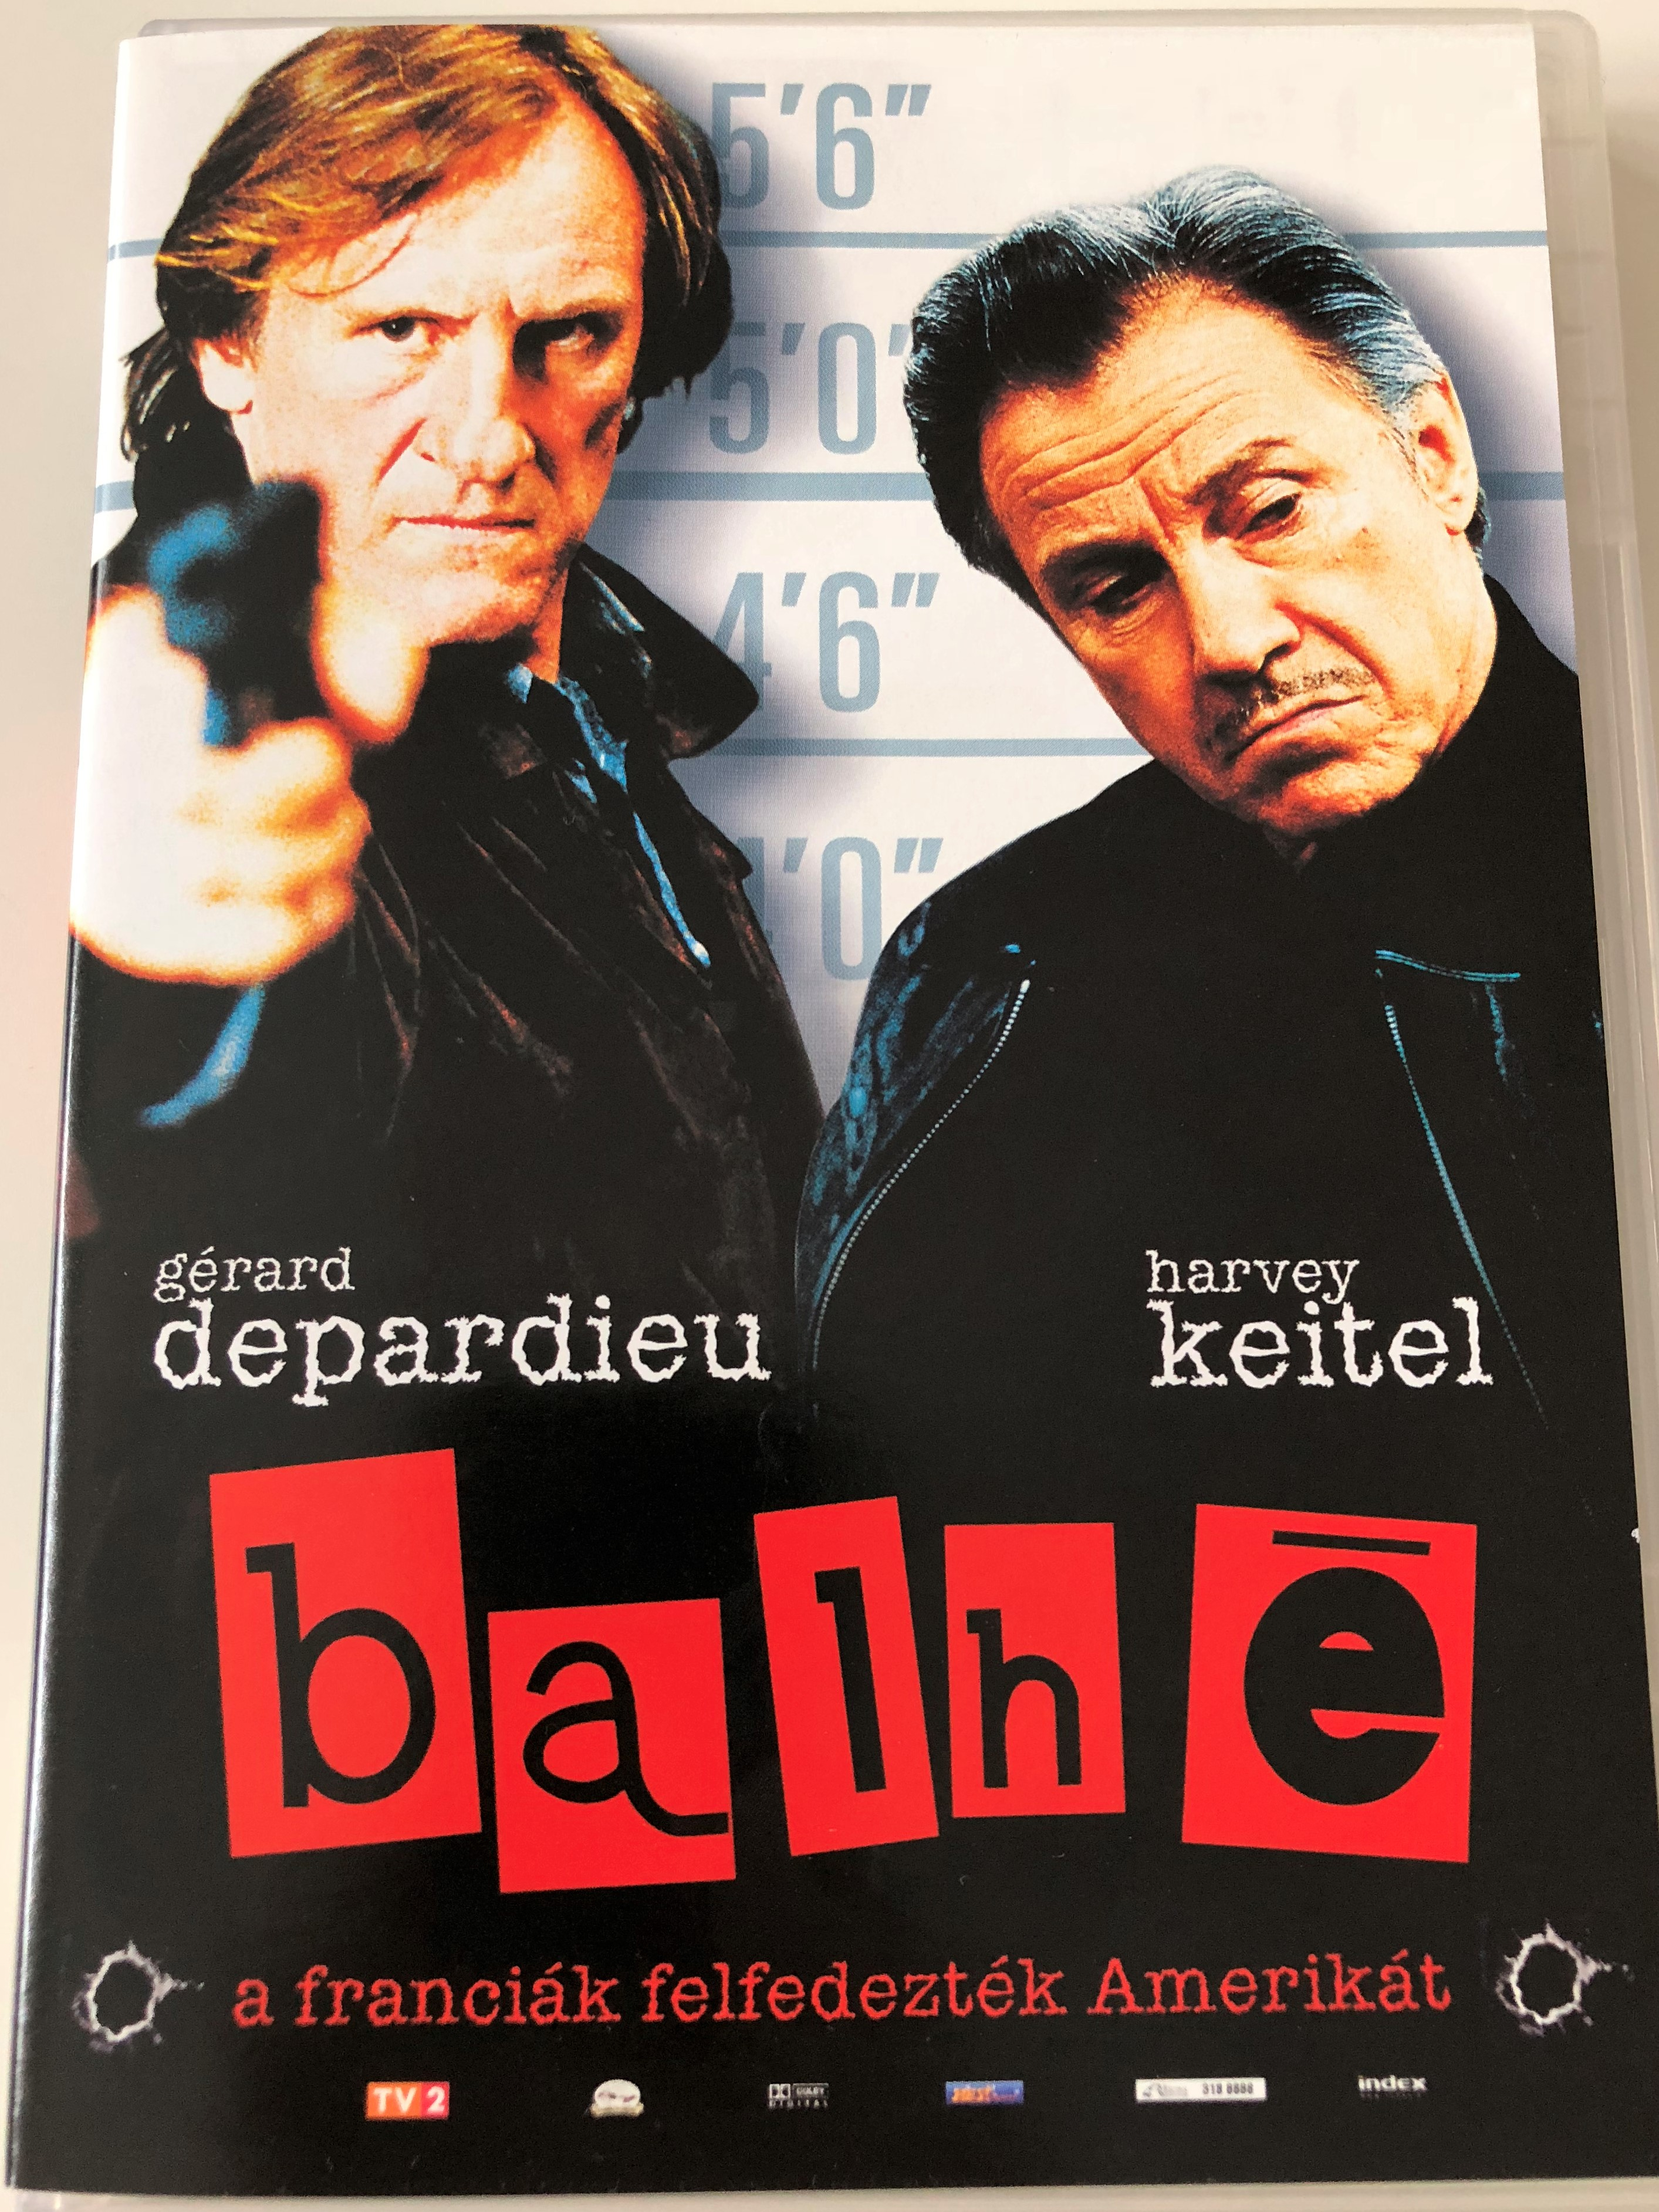 crime-spree-wanted-dvd-2003-balh-directed-by-brad-mirman-starring-g-rard-depardieu-harvey-keitel-johnny-hallyday-renaud-1-.jpg